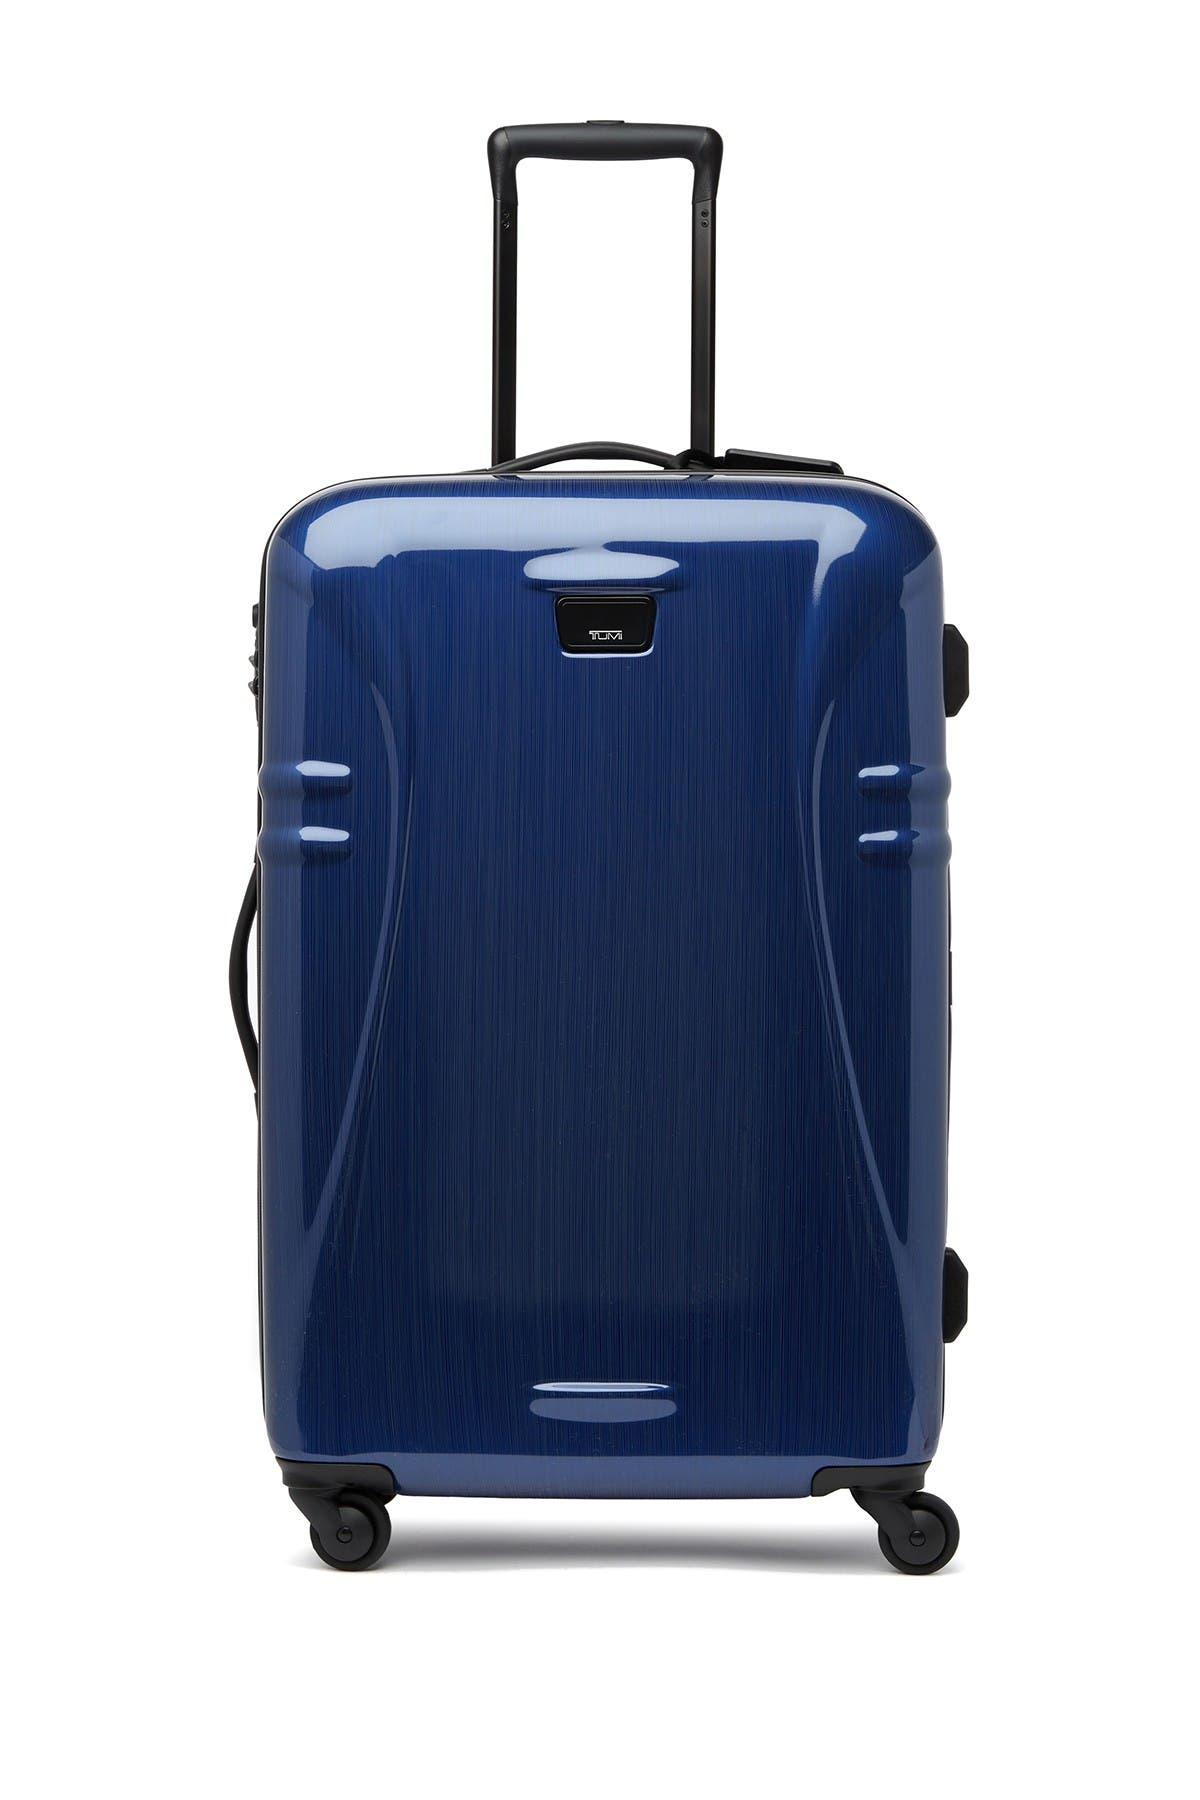 """Tumi International 28"""" Hardside Spinner Suitcase In Cha-cha Blue At Nordstrom Rack"""